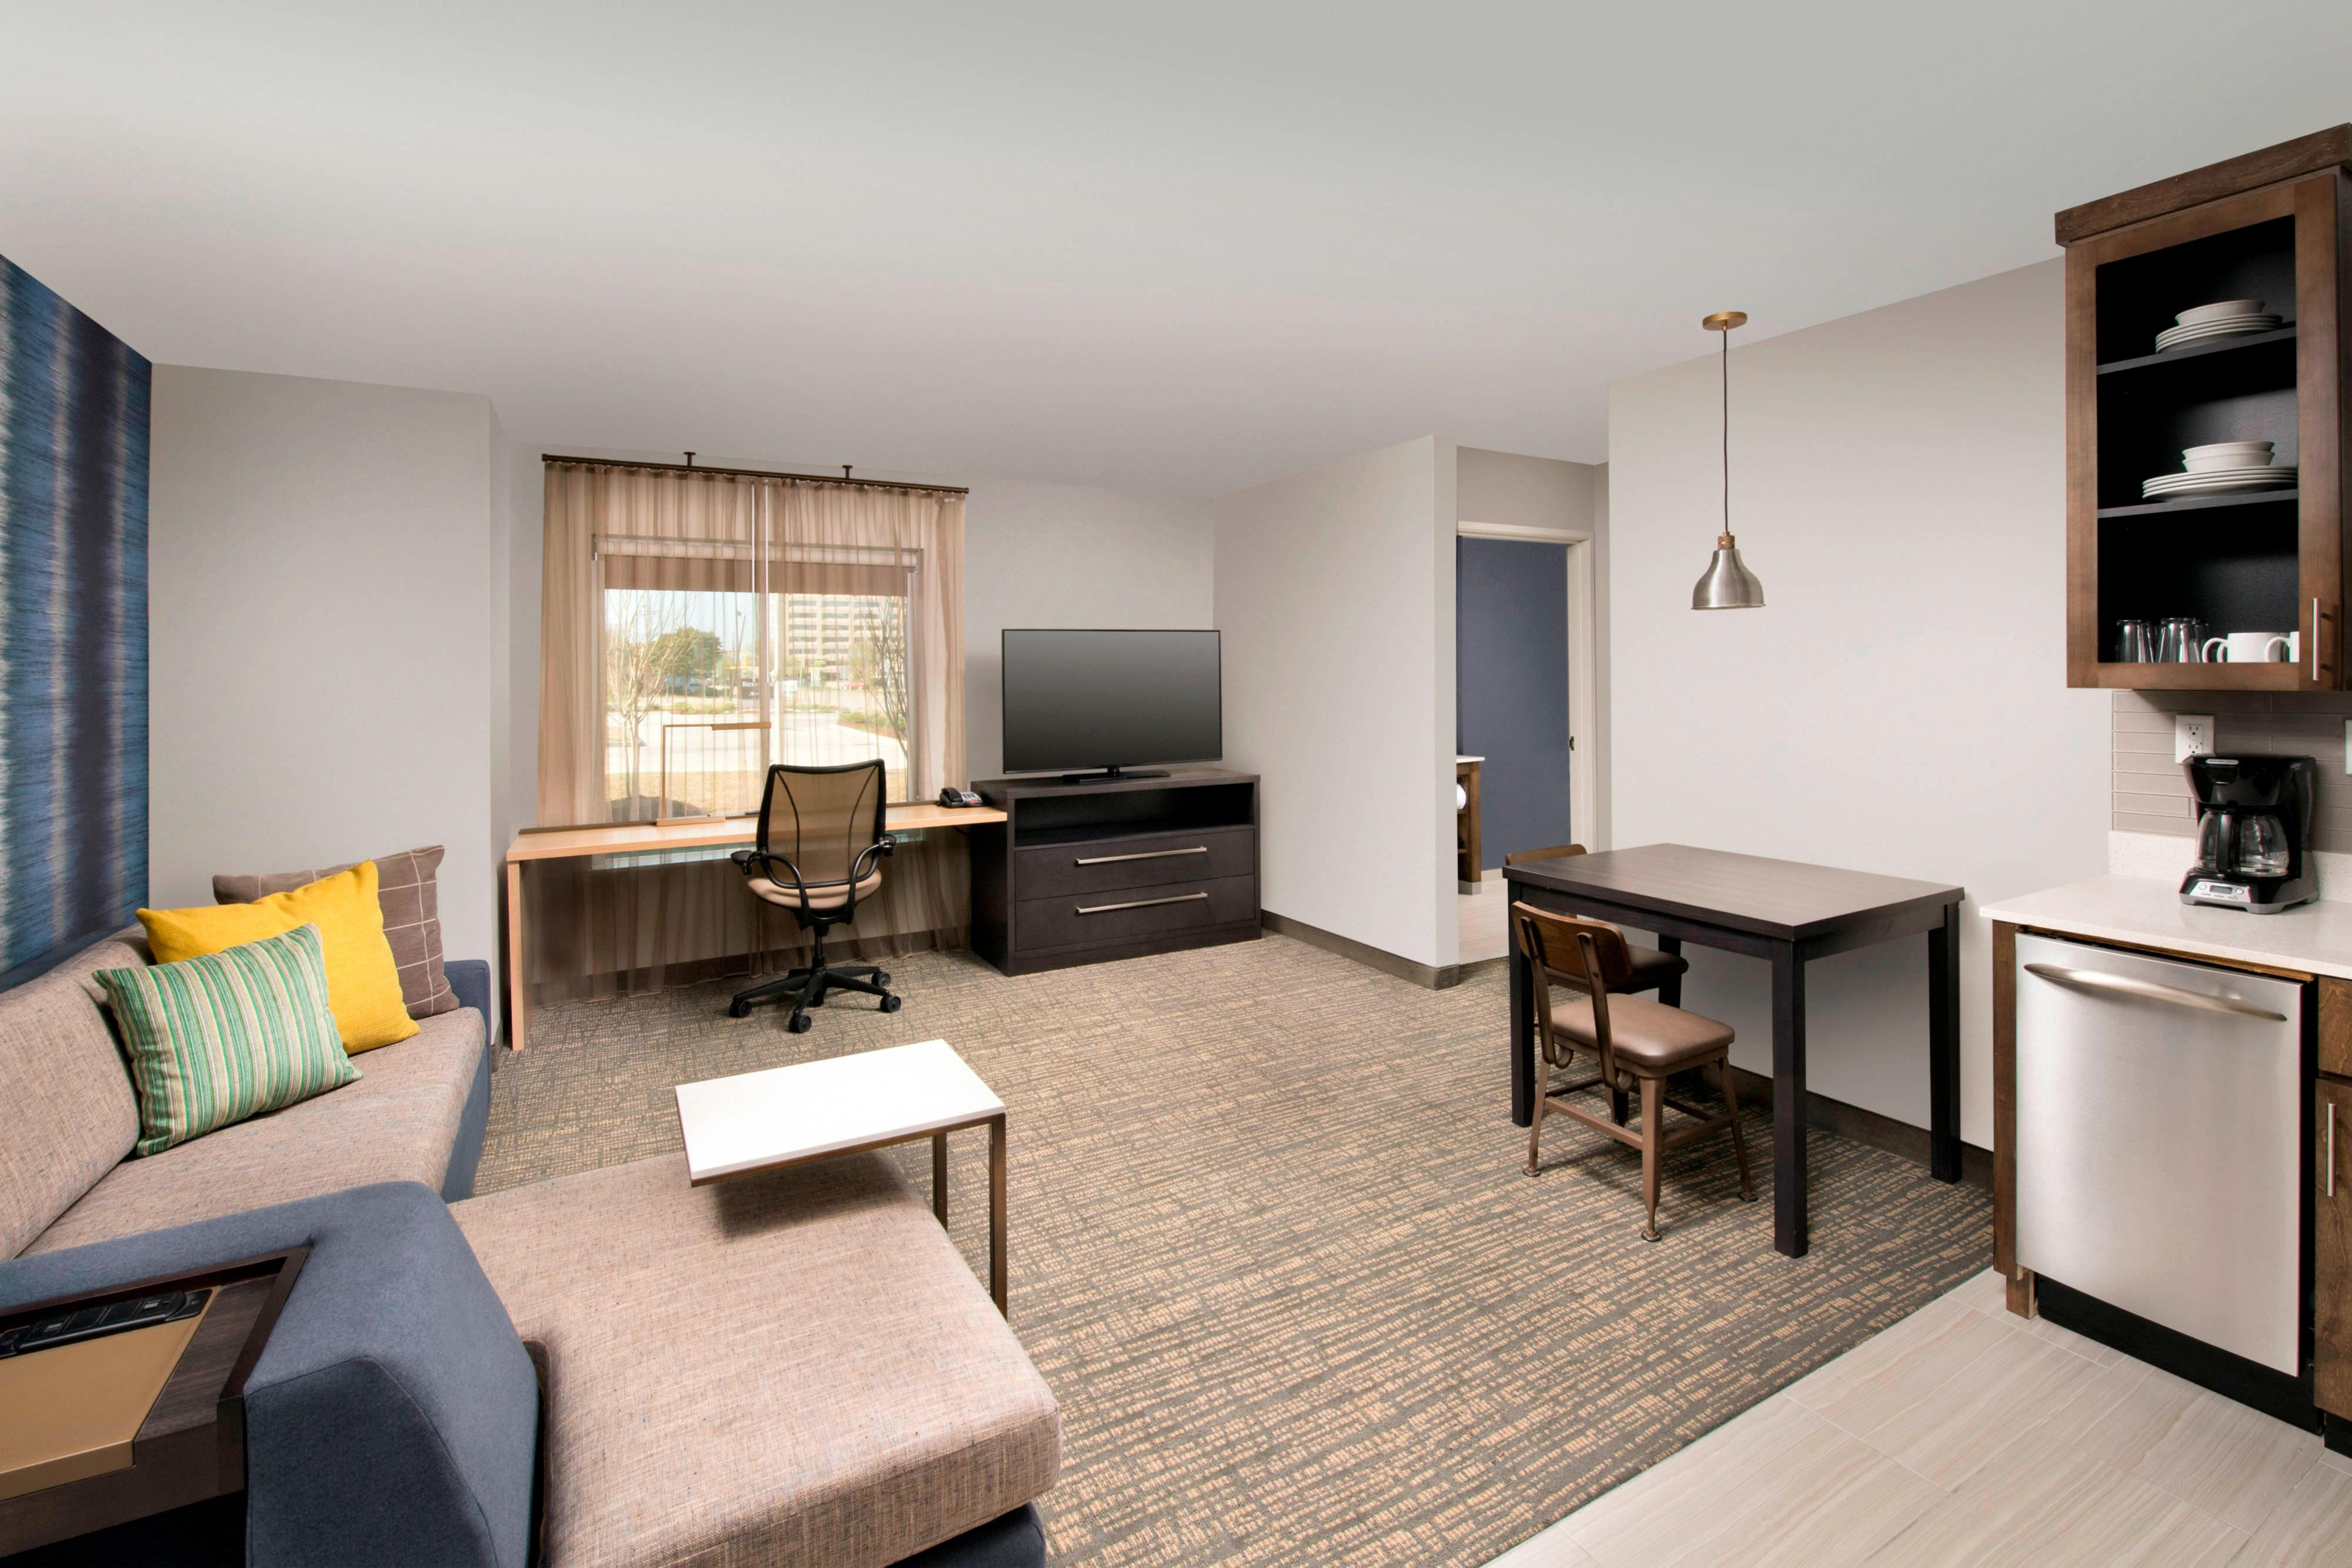 clsc york inn nyc rooms hotel residence hotels new manhattan suites suite square in orleans bedroom hor times nycri